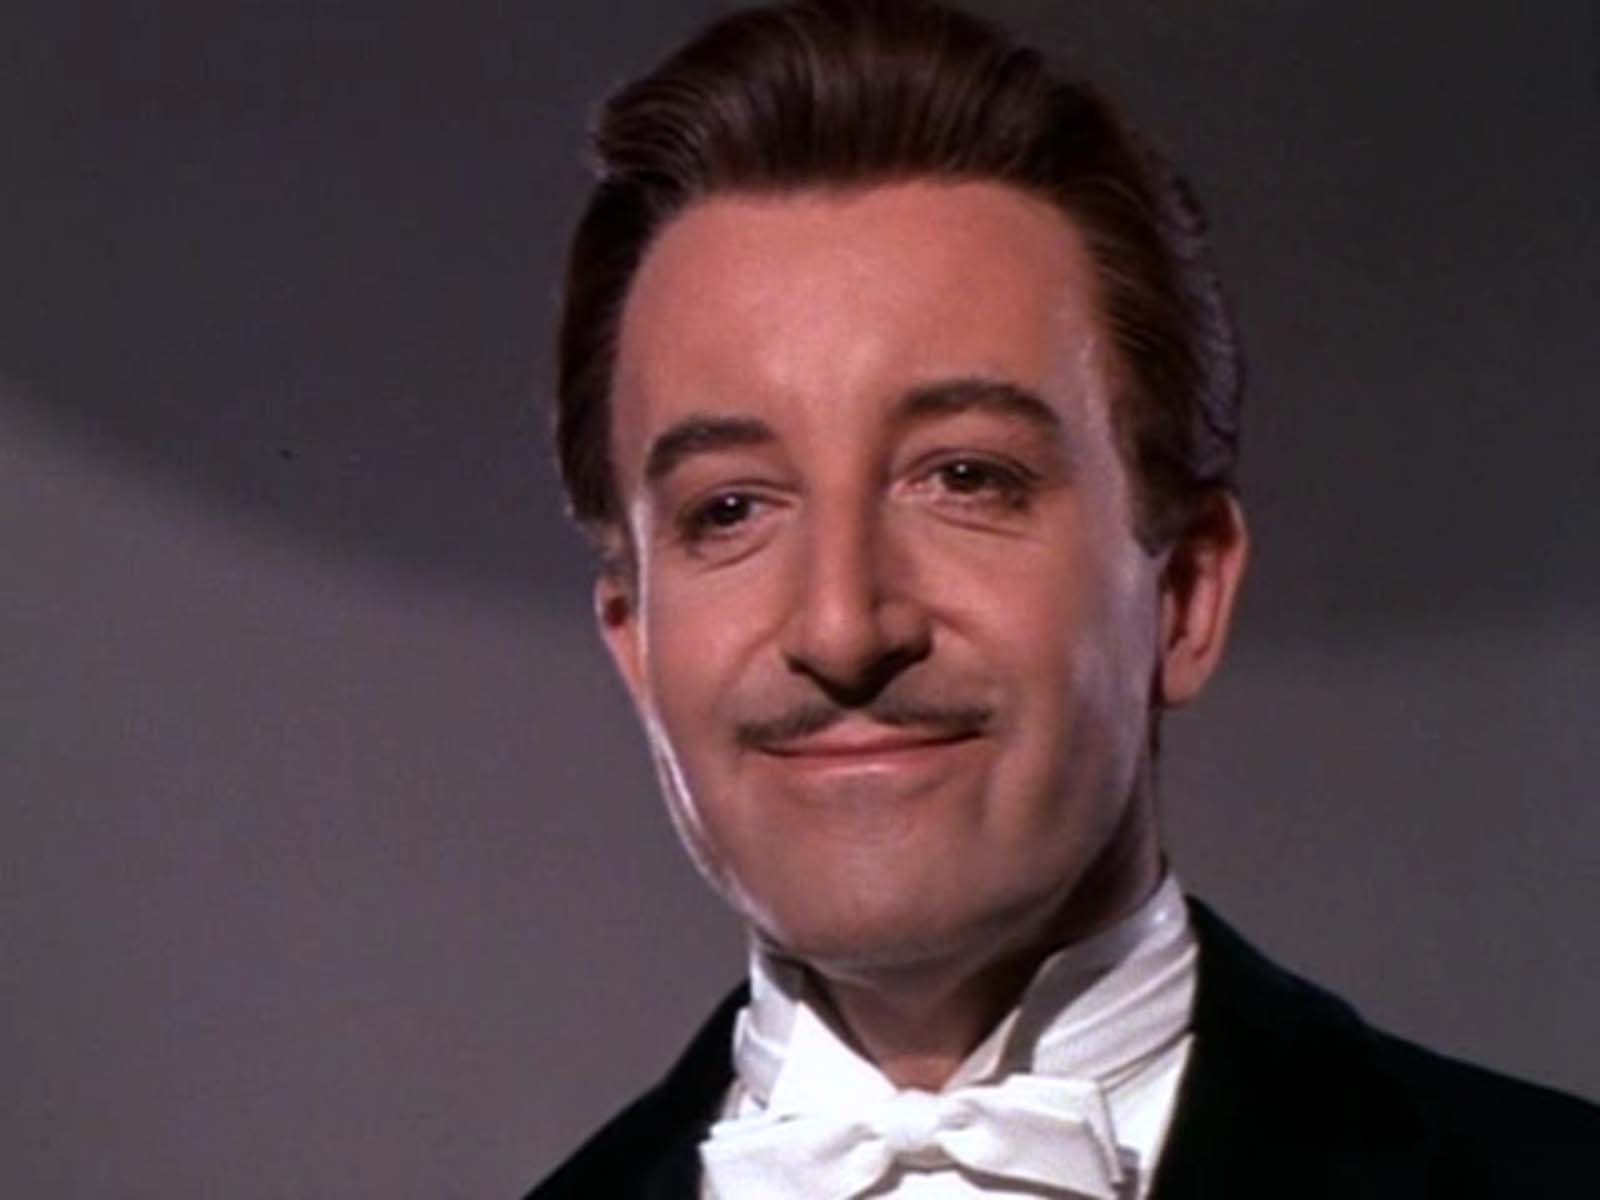 Peter Sellers an Example of Borderline Personality Disorder